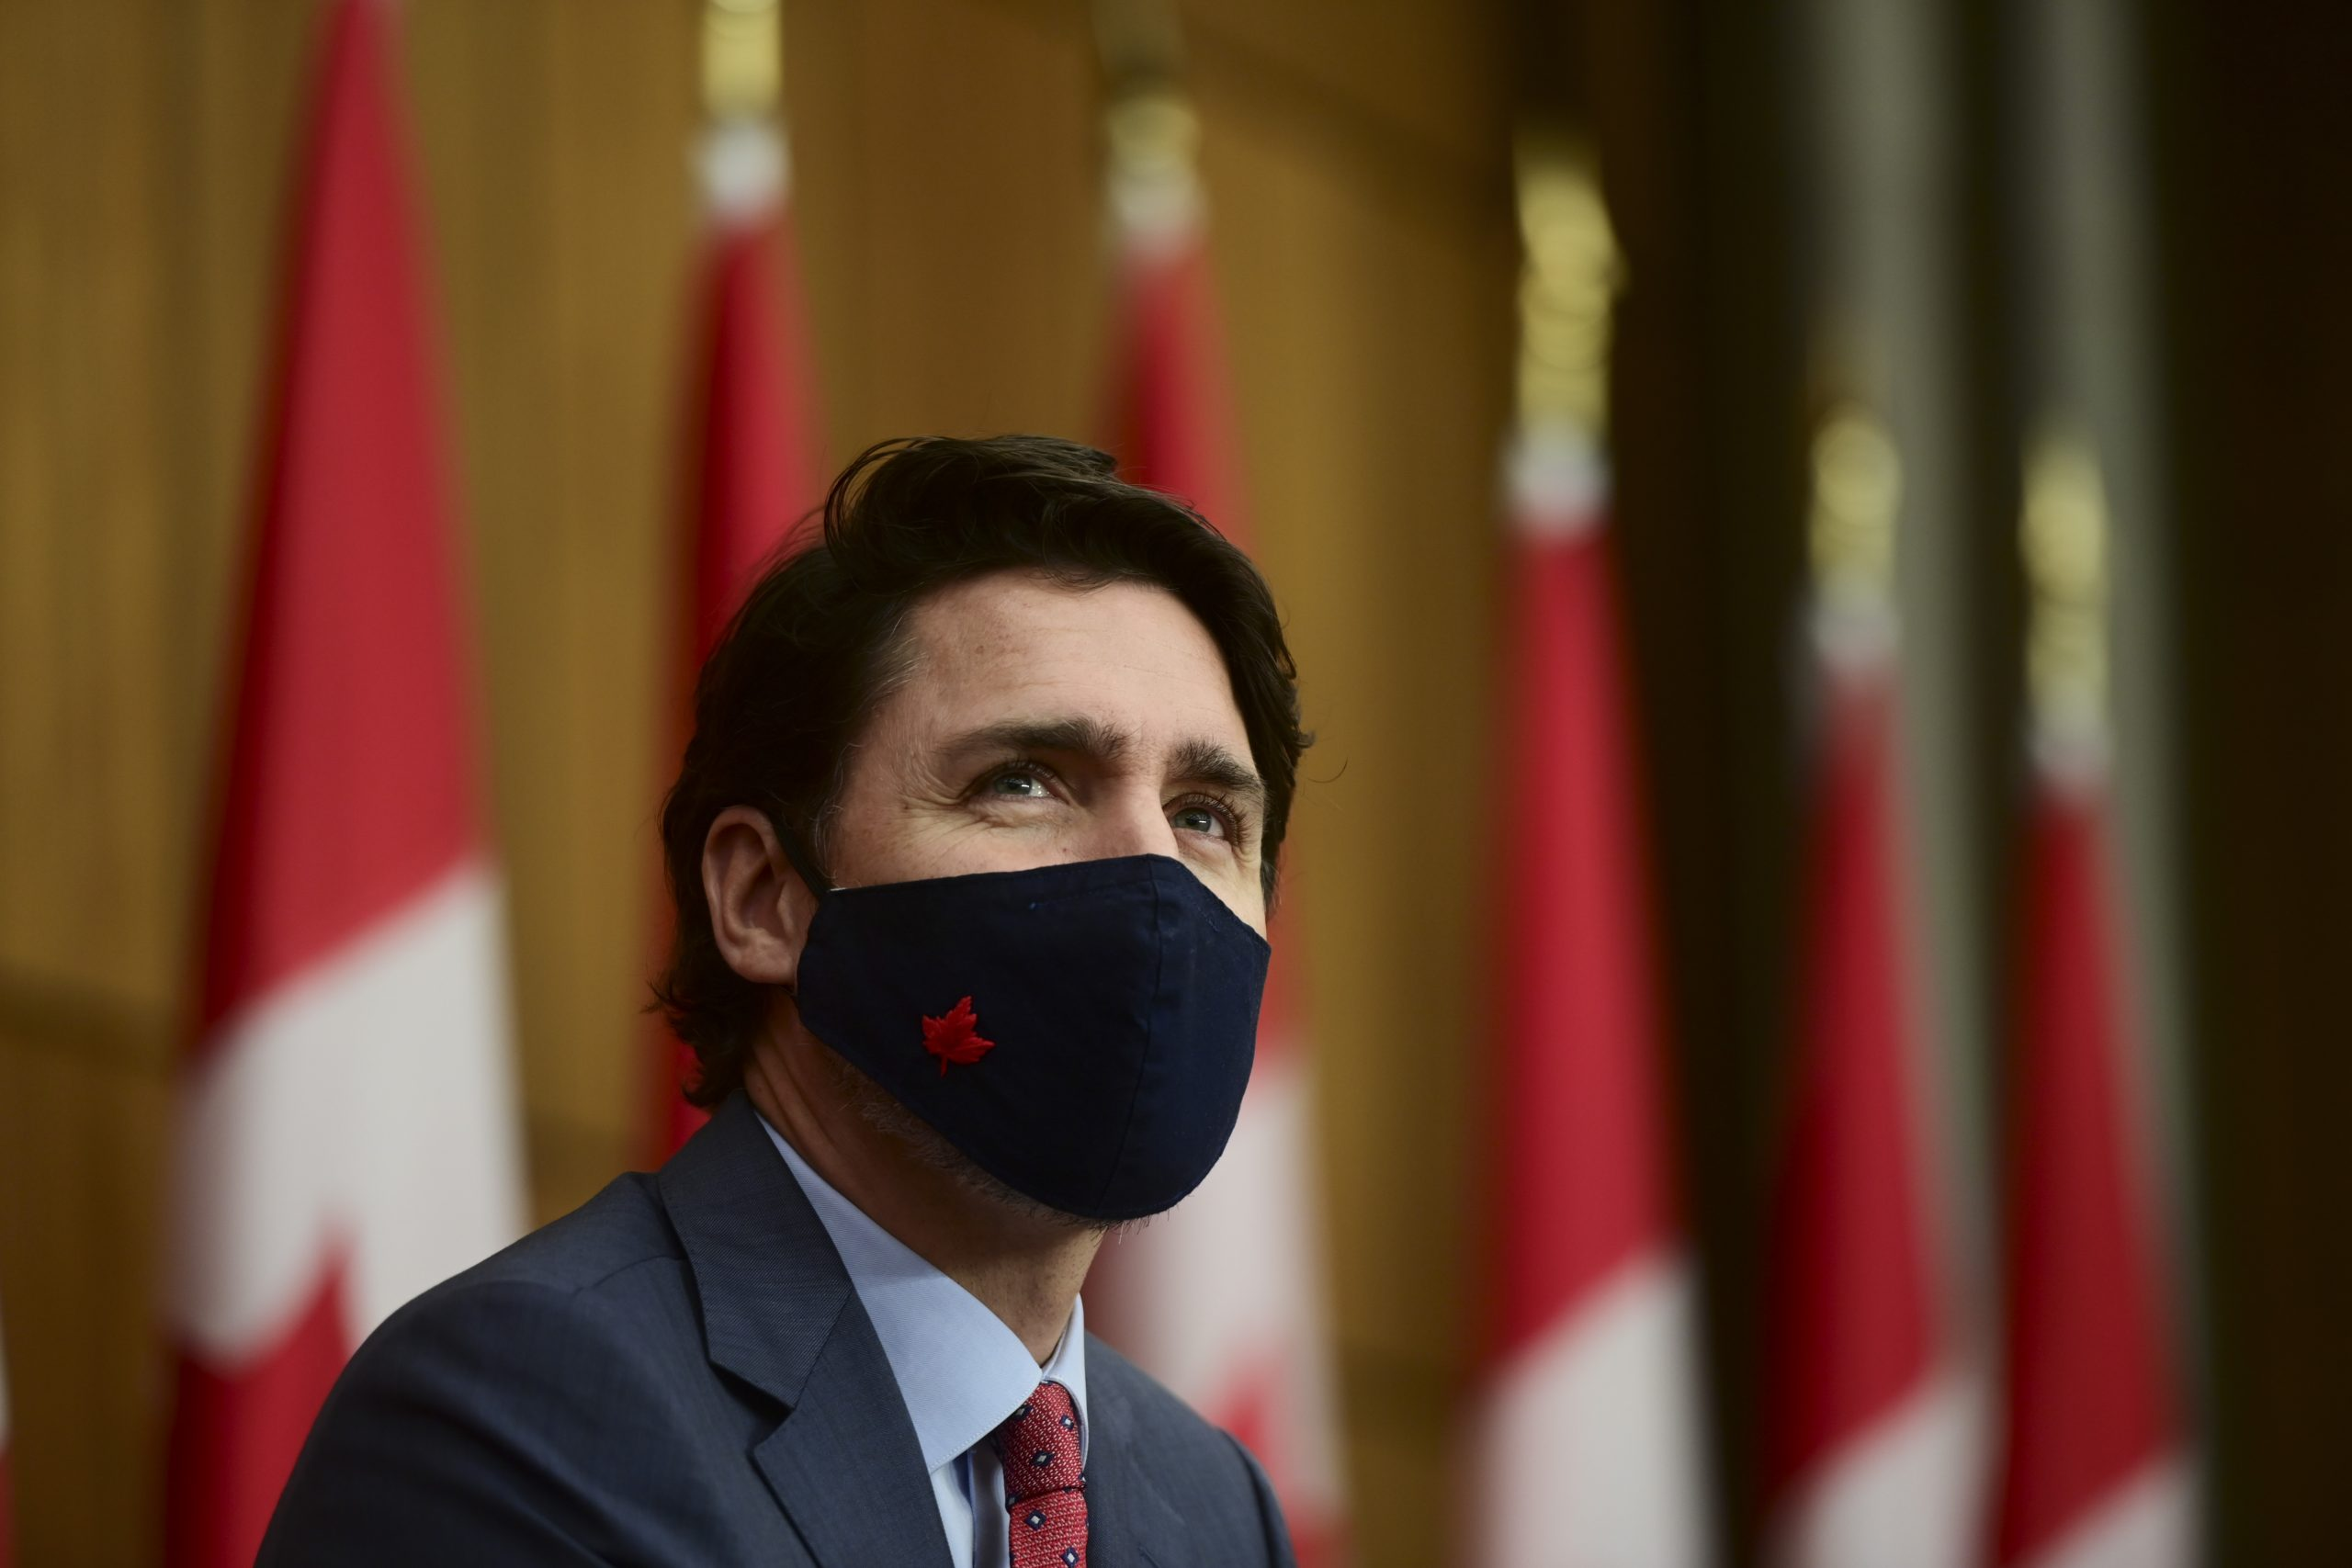 Trudeau rejects Alberta cabinet minister accusation he wants COVID health disaster